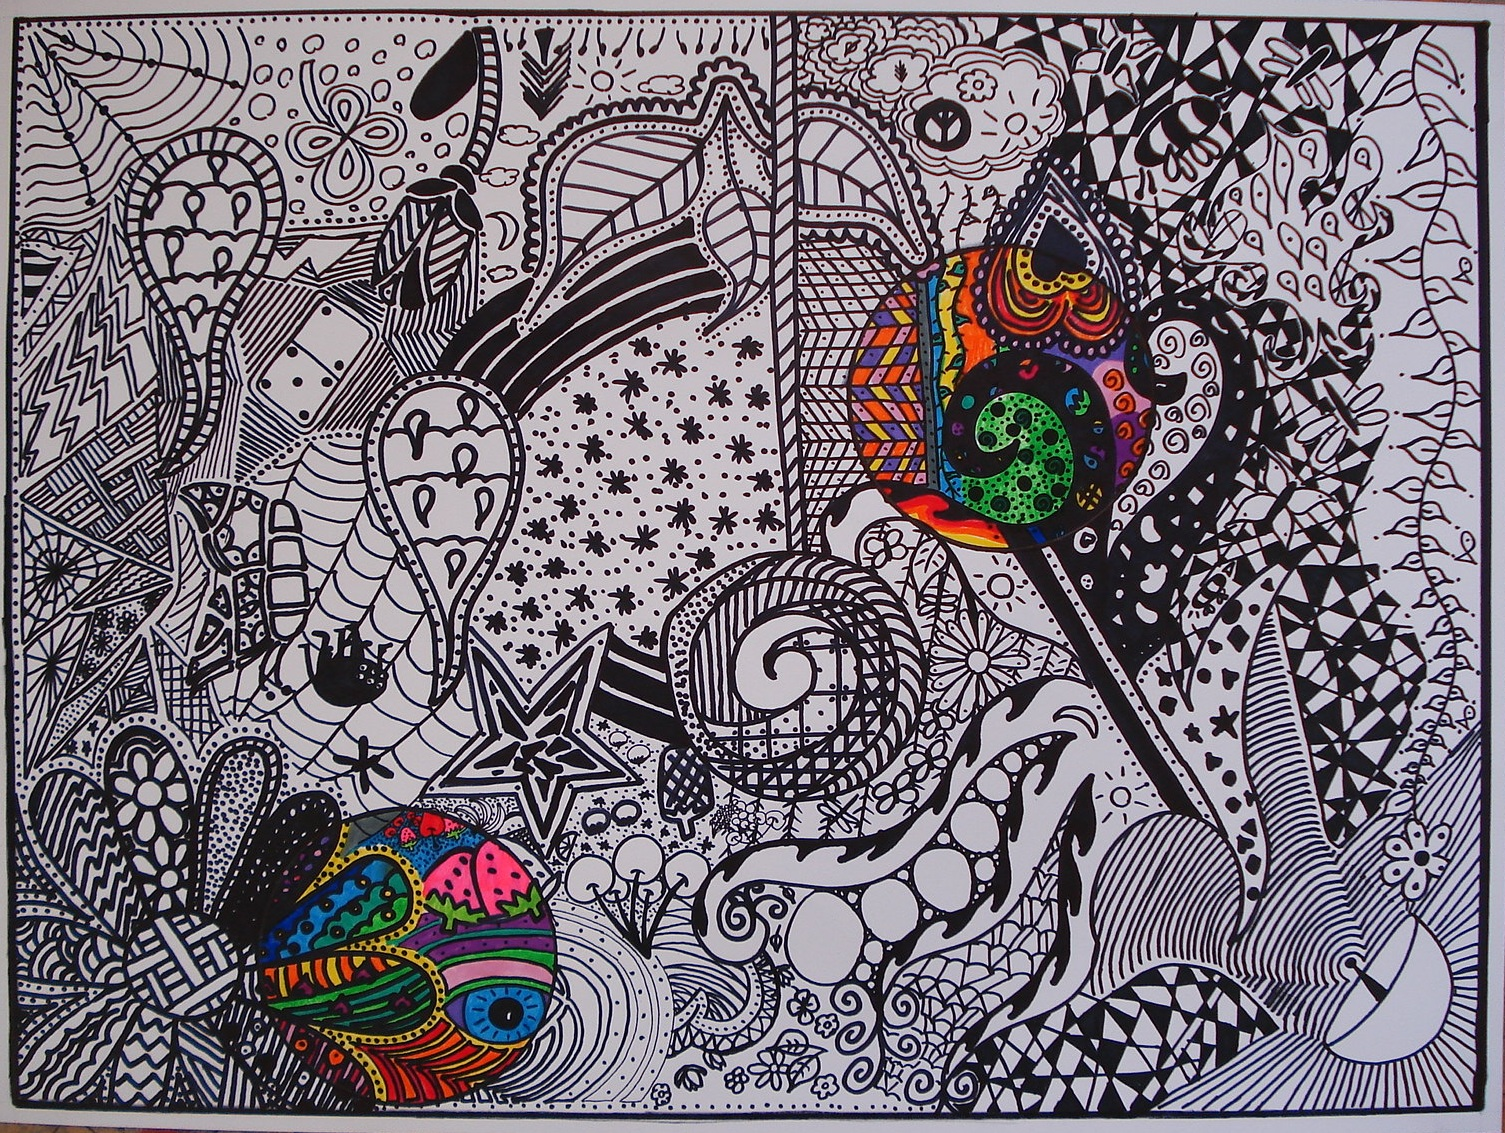 art sub lessons black and white doodle design